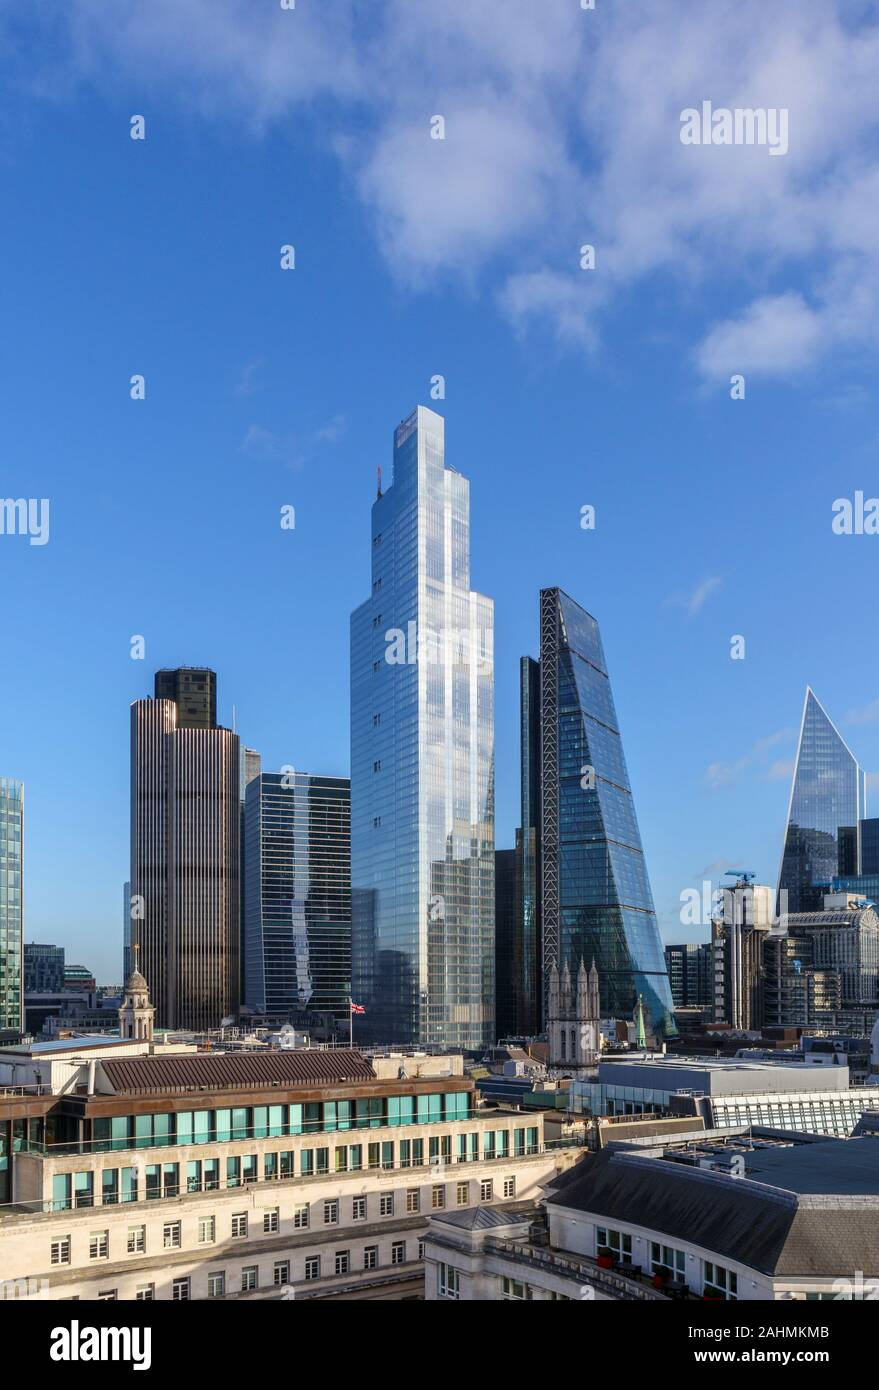 View of 100 Bishopsgate, a new modern office block in the City of London financial district taller than the Cheesegrater, Tower 42 and 100 Bishopsgate Stock Photo